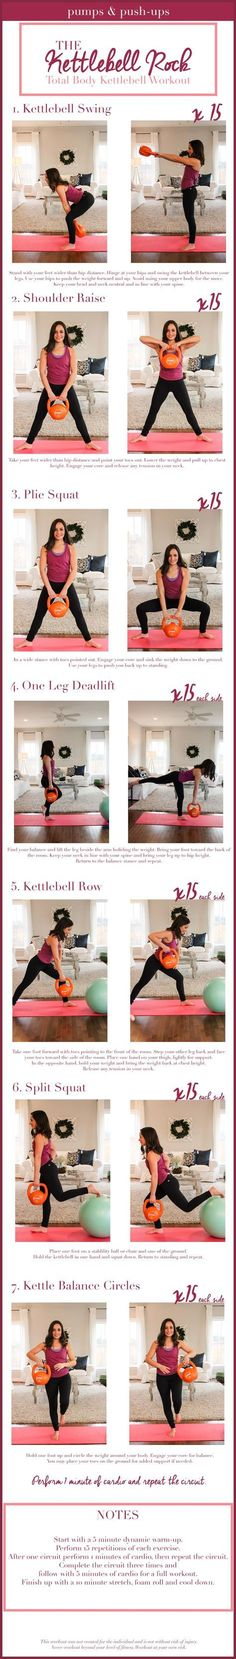 Kettlebell Rock & Oh, Hey Girl! Link-Up The Kettlebell Rock & Oh, Hey Girl! Link-Up Workout Plans workout plans to gain massThe Kettlebell Rock & Oh, Hey Girl! Link-Up Workout Plans workout plans to gain mass Kettle Ball, Kettlebell Training, Workout Kettlebell, Tabata, Fitness Motivation, Sport Motivation, Motivation Pictures, Fitness Goals, Shape Fitness